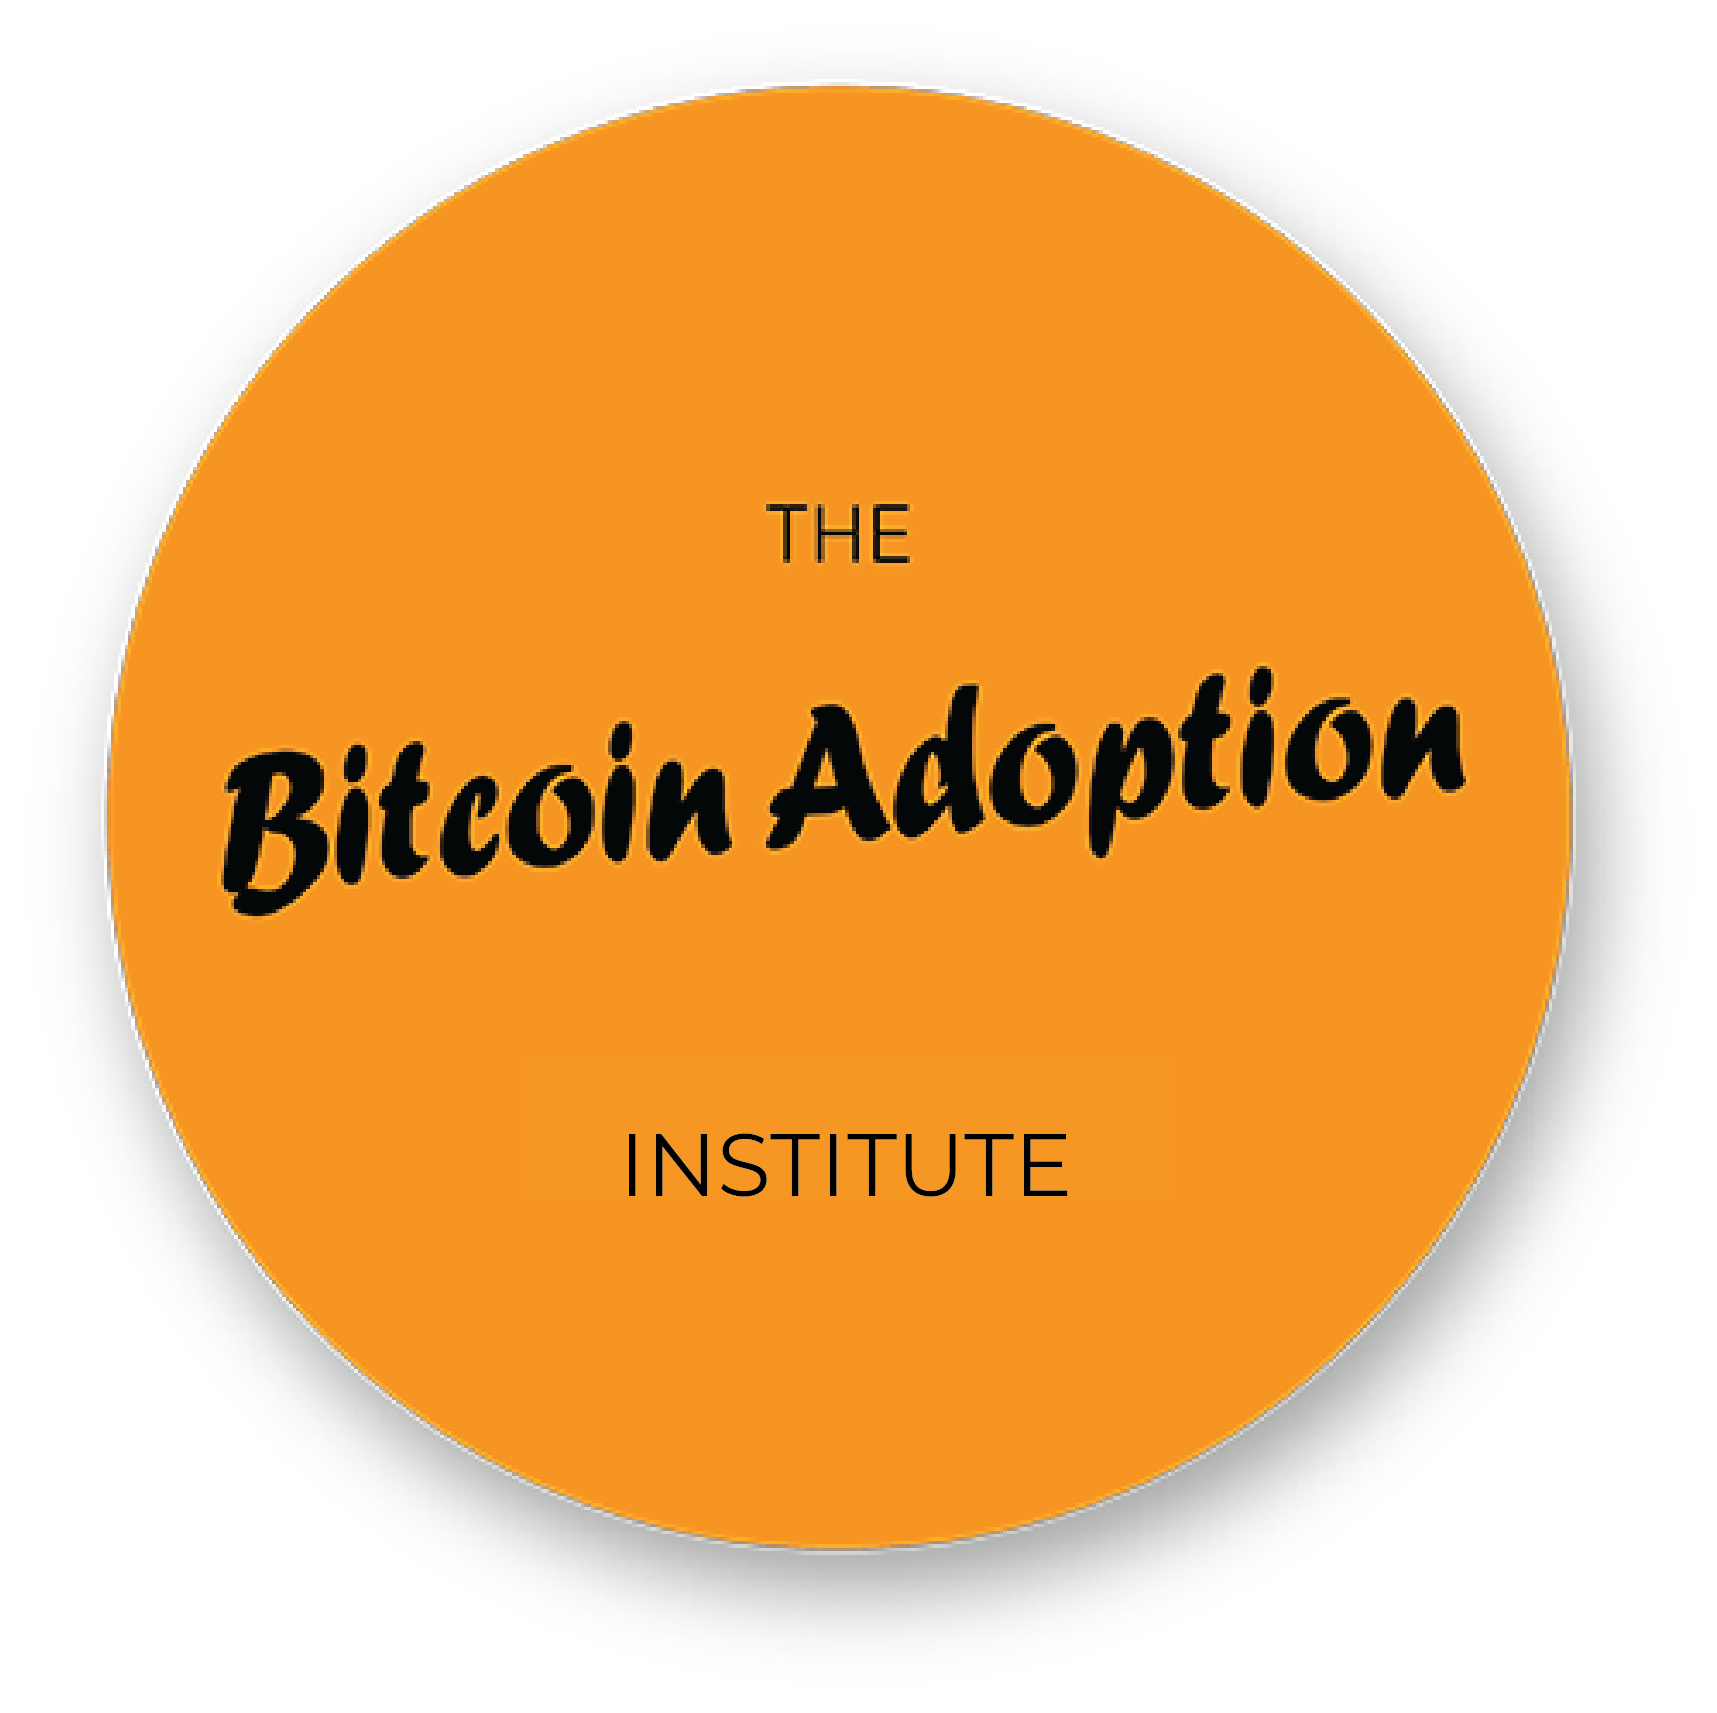 Bitcoin Adoption Institute